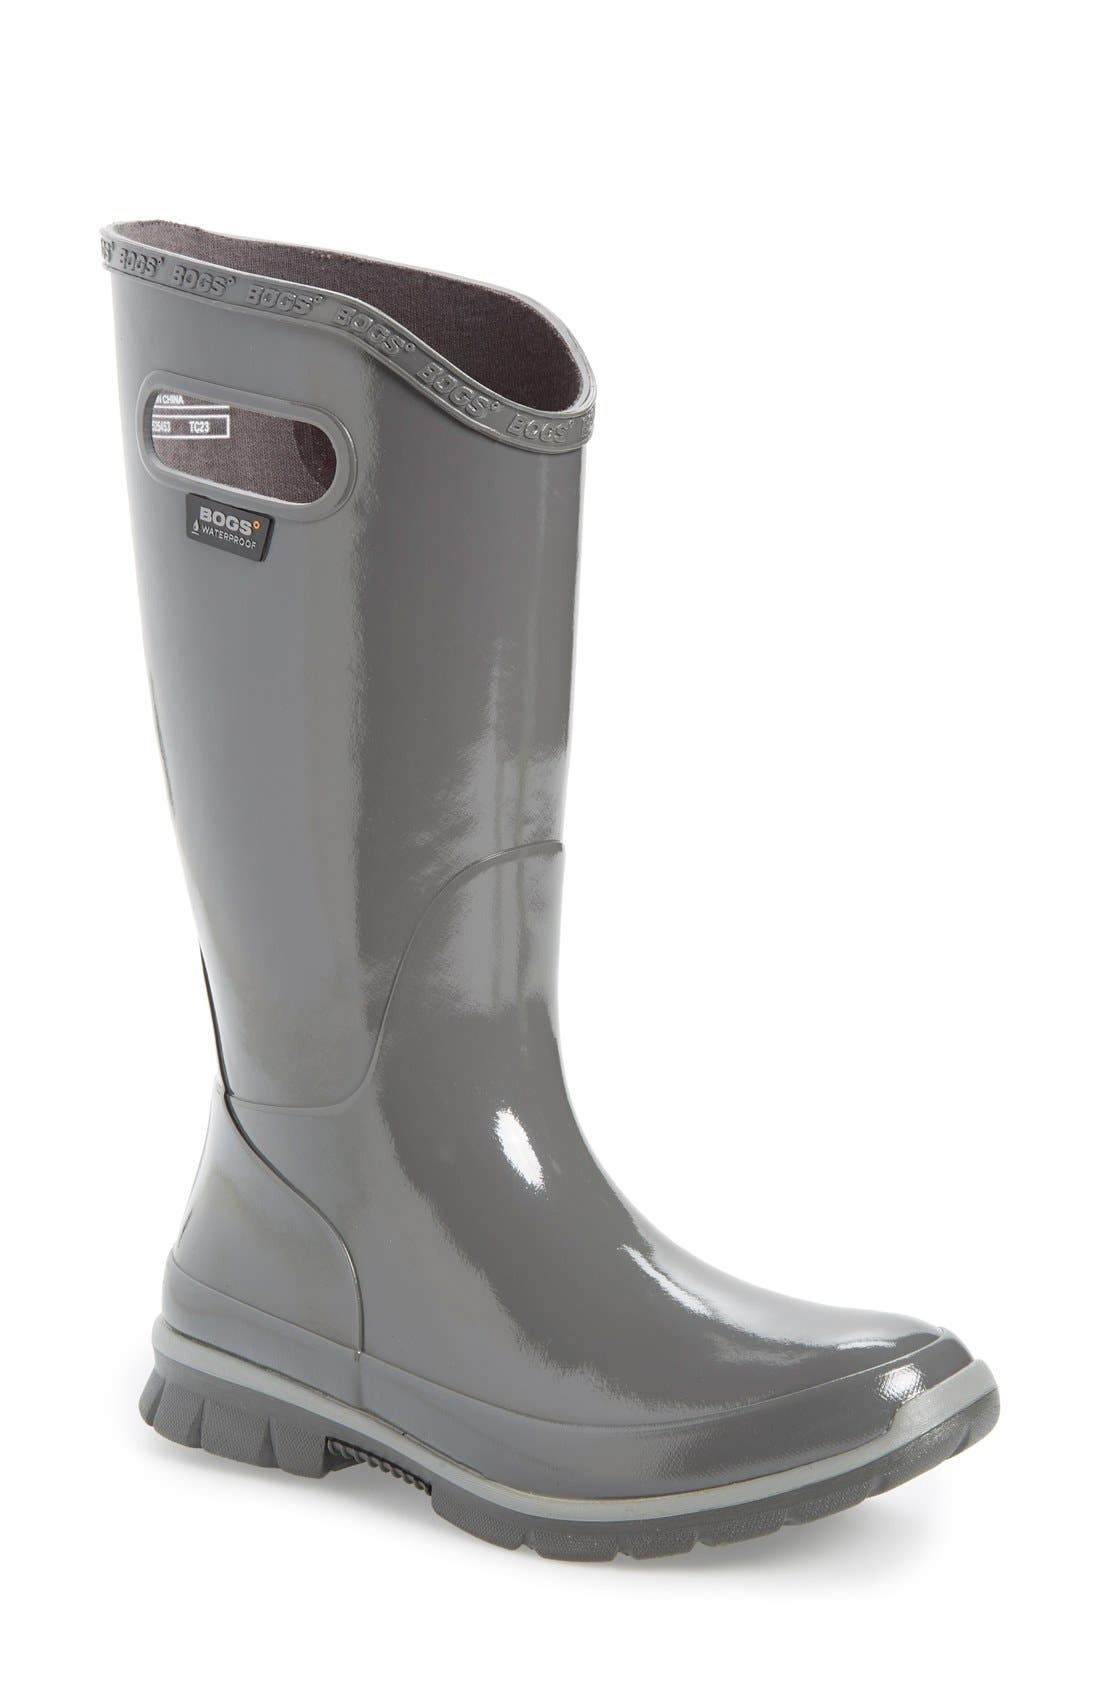 Alternate Image 1 Selected - Bogs 'Berkley' Waterproof Rain Boot (Women)